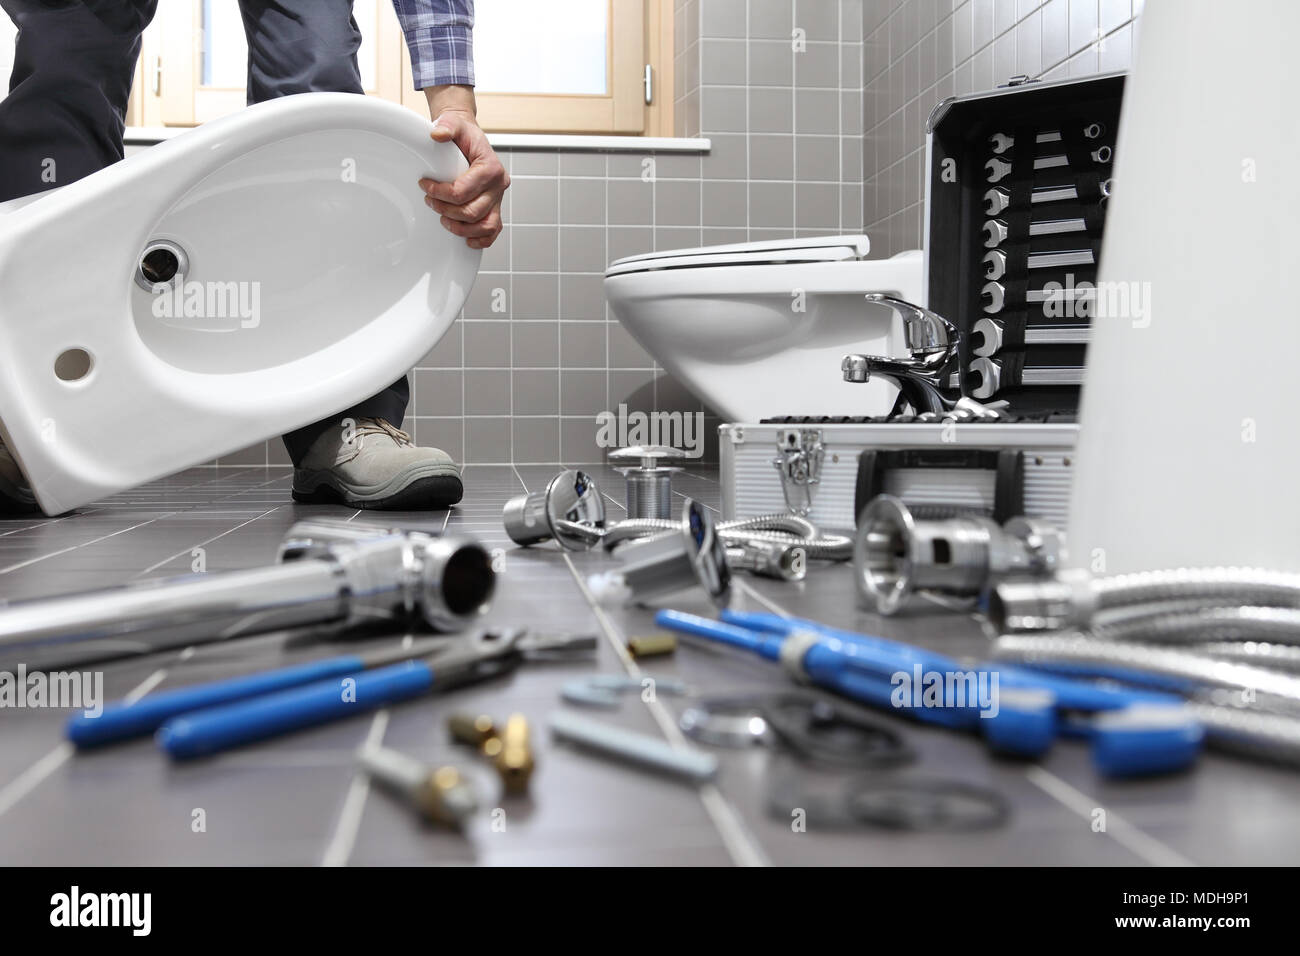 Plumber At Work In A Bathroom Plumbing Repair Service Assemble And - Bathroom repair services